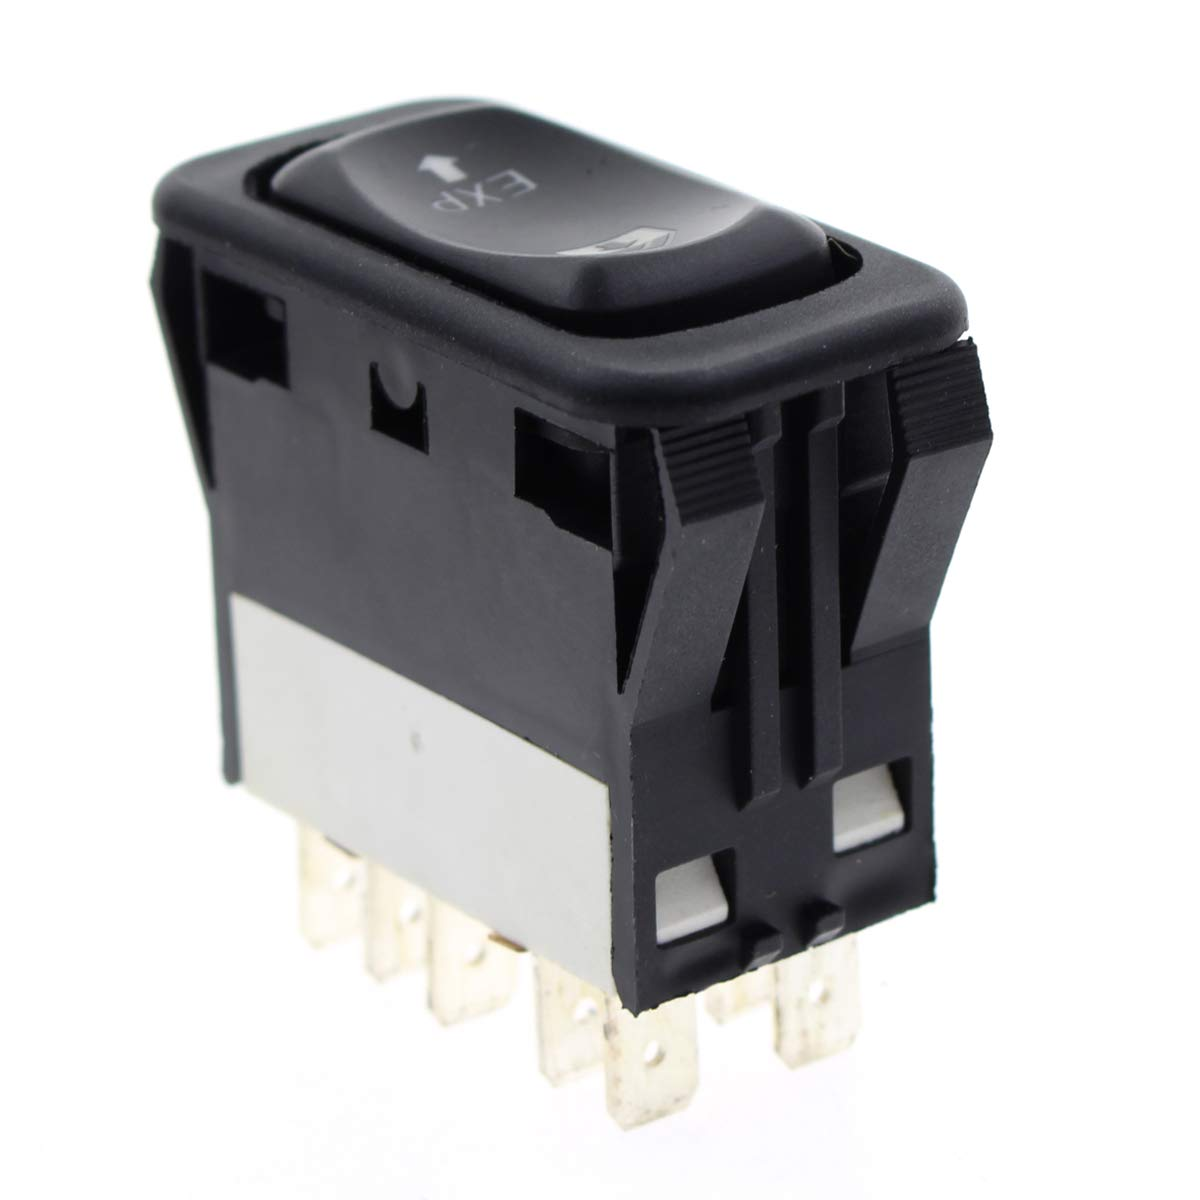 Carbhub A06-30769-008 Power Window Switch for Freightliner Columbia 2003-2010 57746503 A06-30769-008 Dorman 901-5204CD Carbour